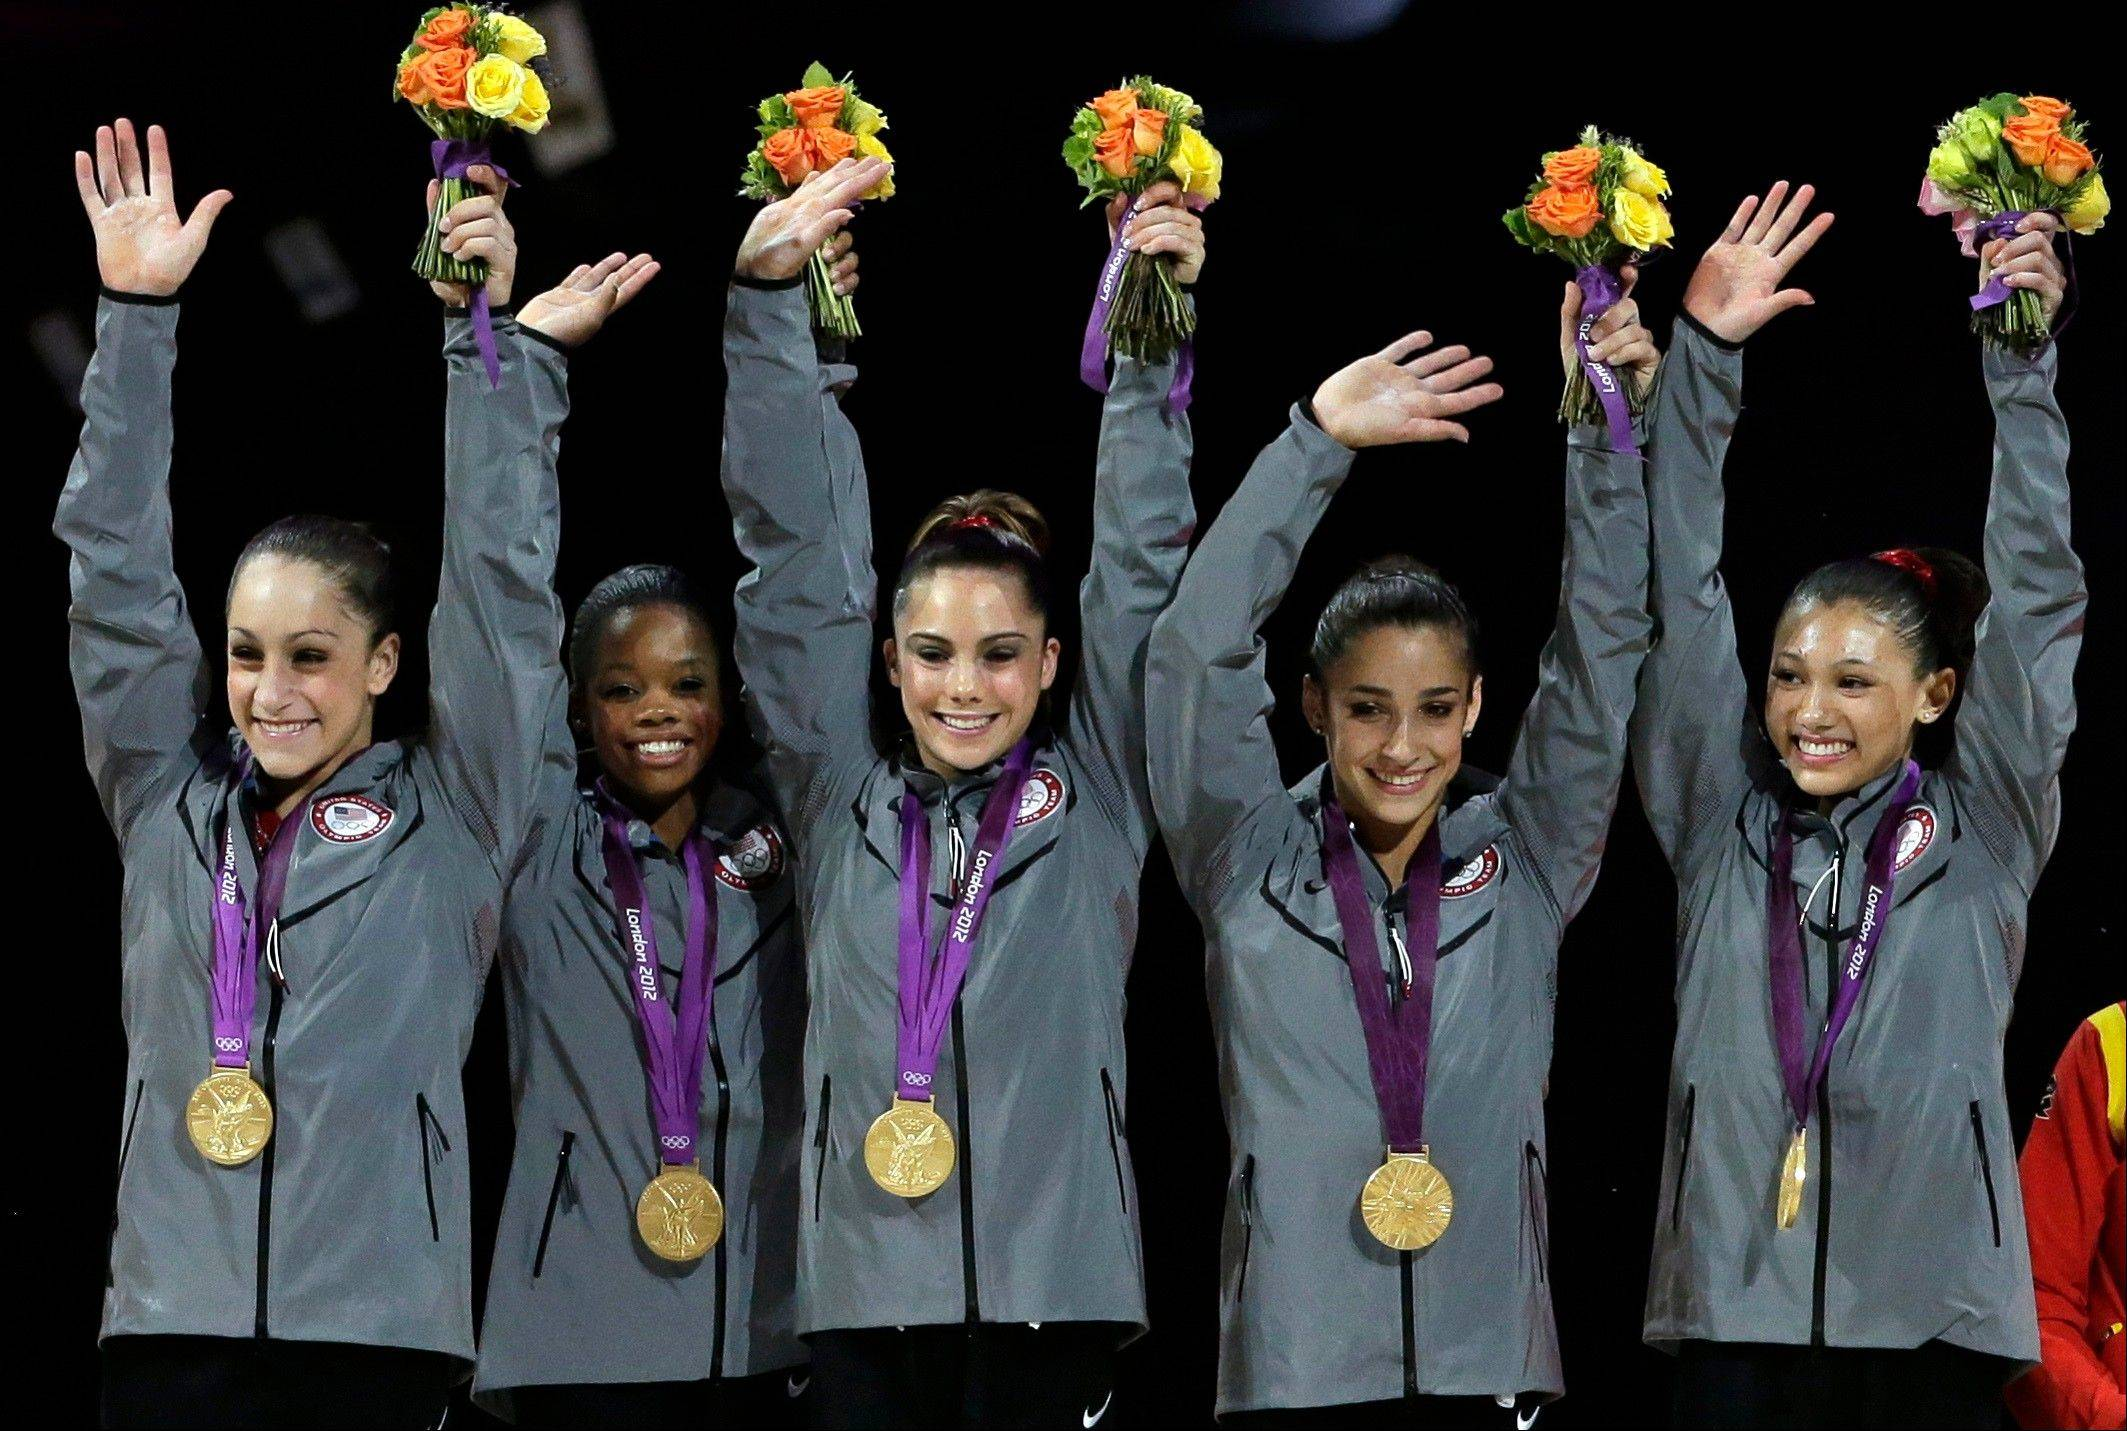 With the gymnastics competition over, the U.S. women -- Jordyn Wieber, Gabby Douglas, McKayla Maroney, Aly Raisman and Kyla Ross -- are beginning to realize just how big a deal they've become back home.